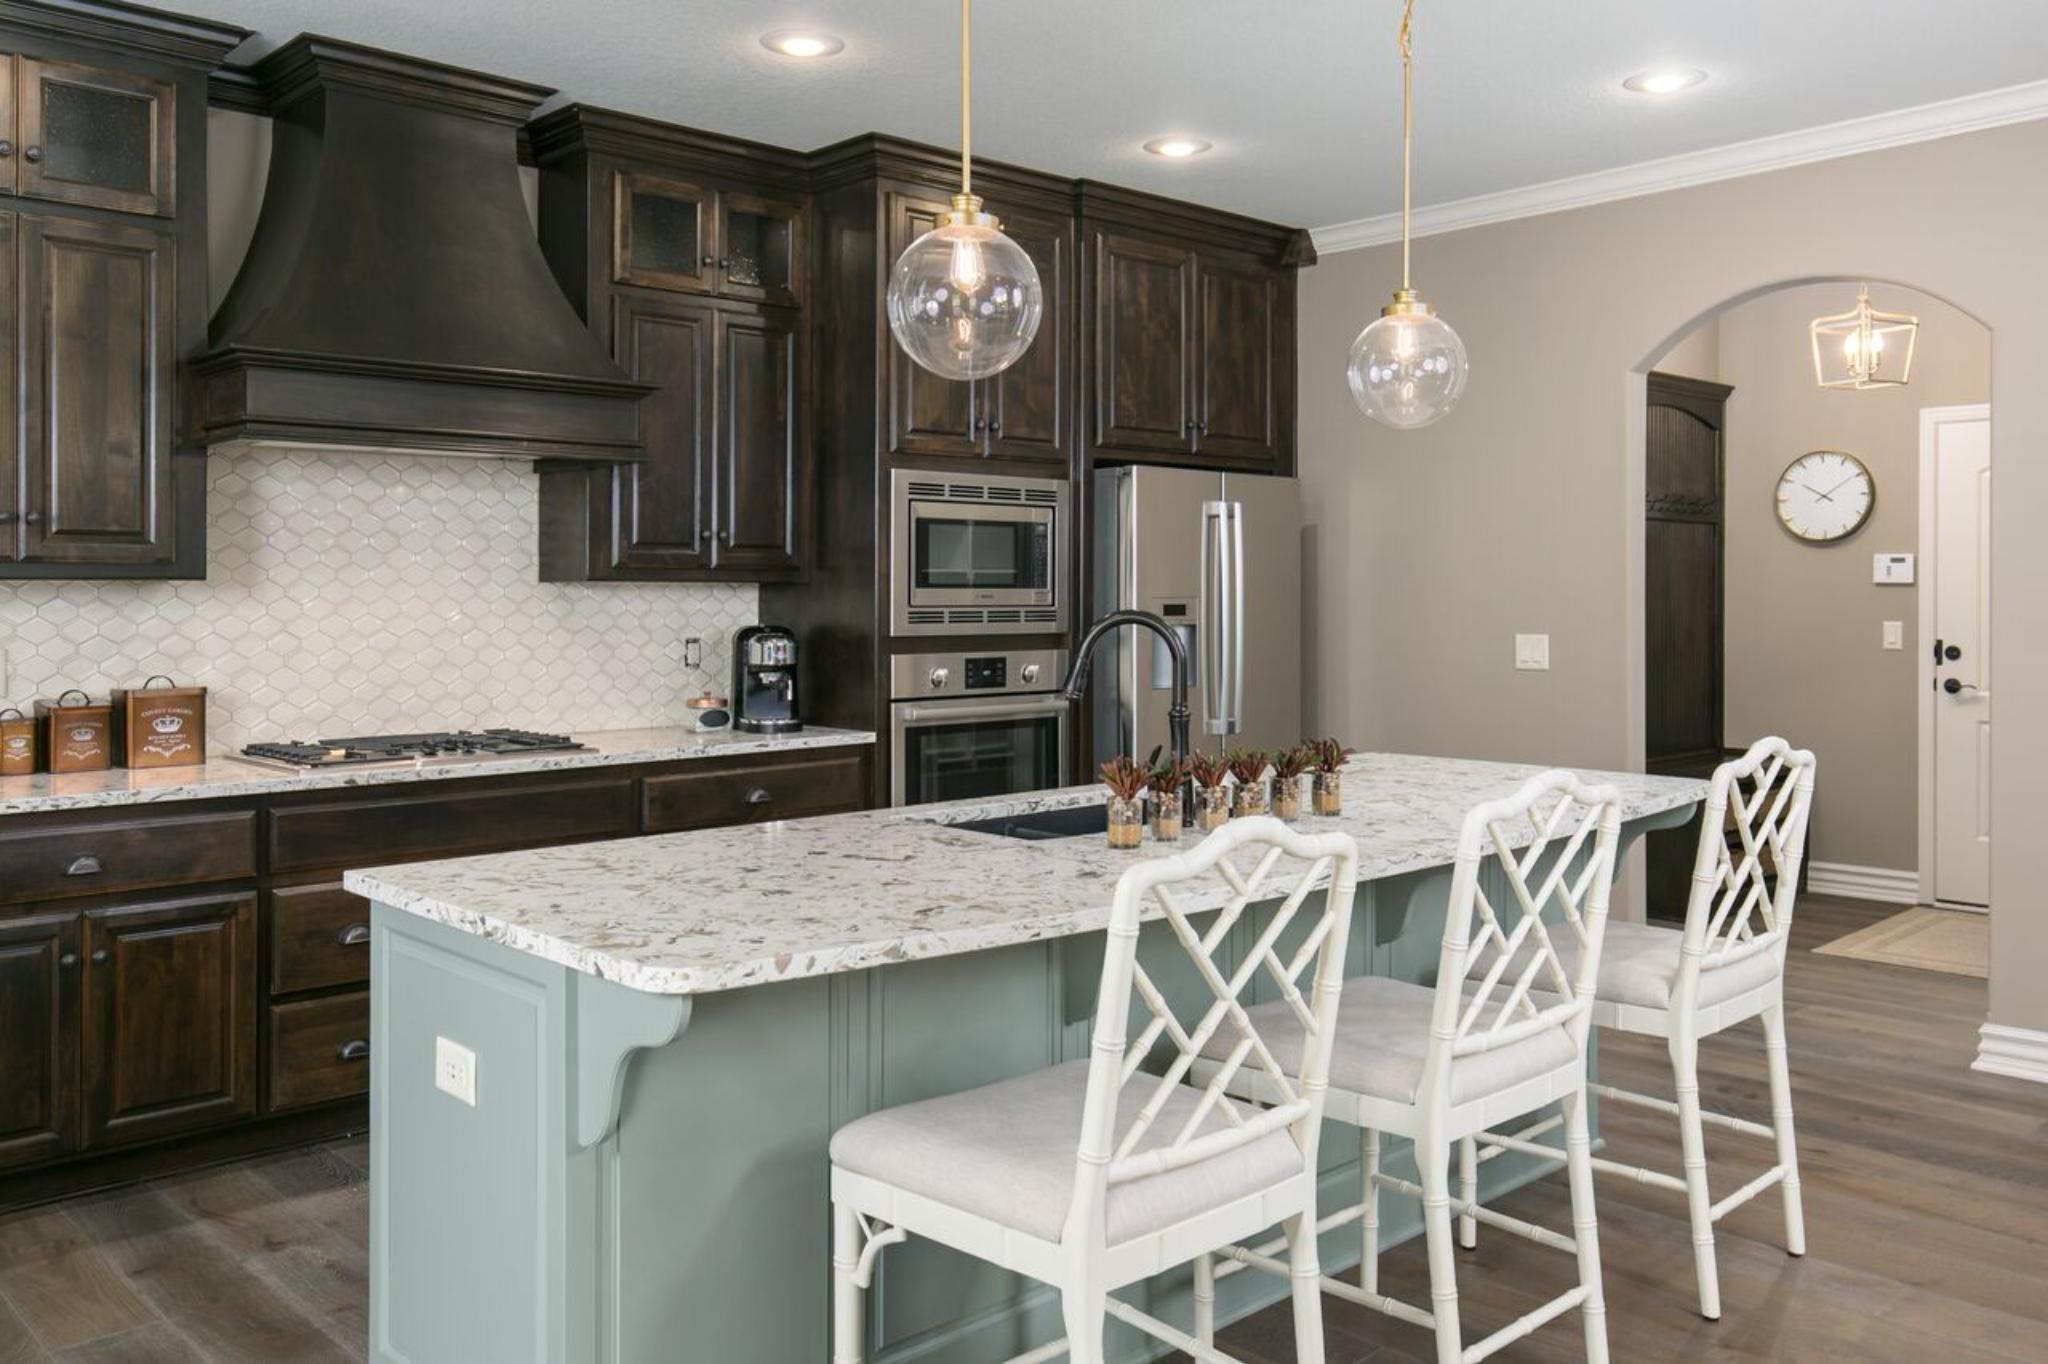 Kitchen featured in the Torino By Summit Homes in Kansas City, MO